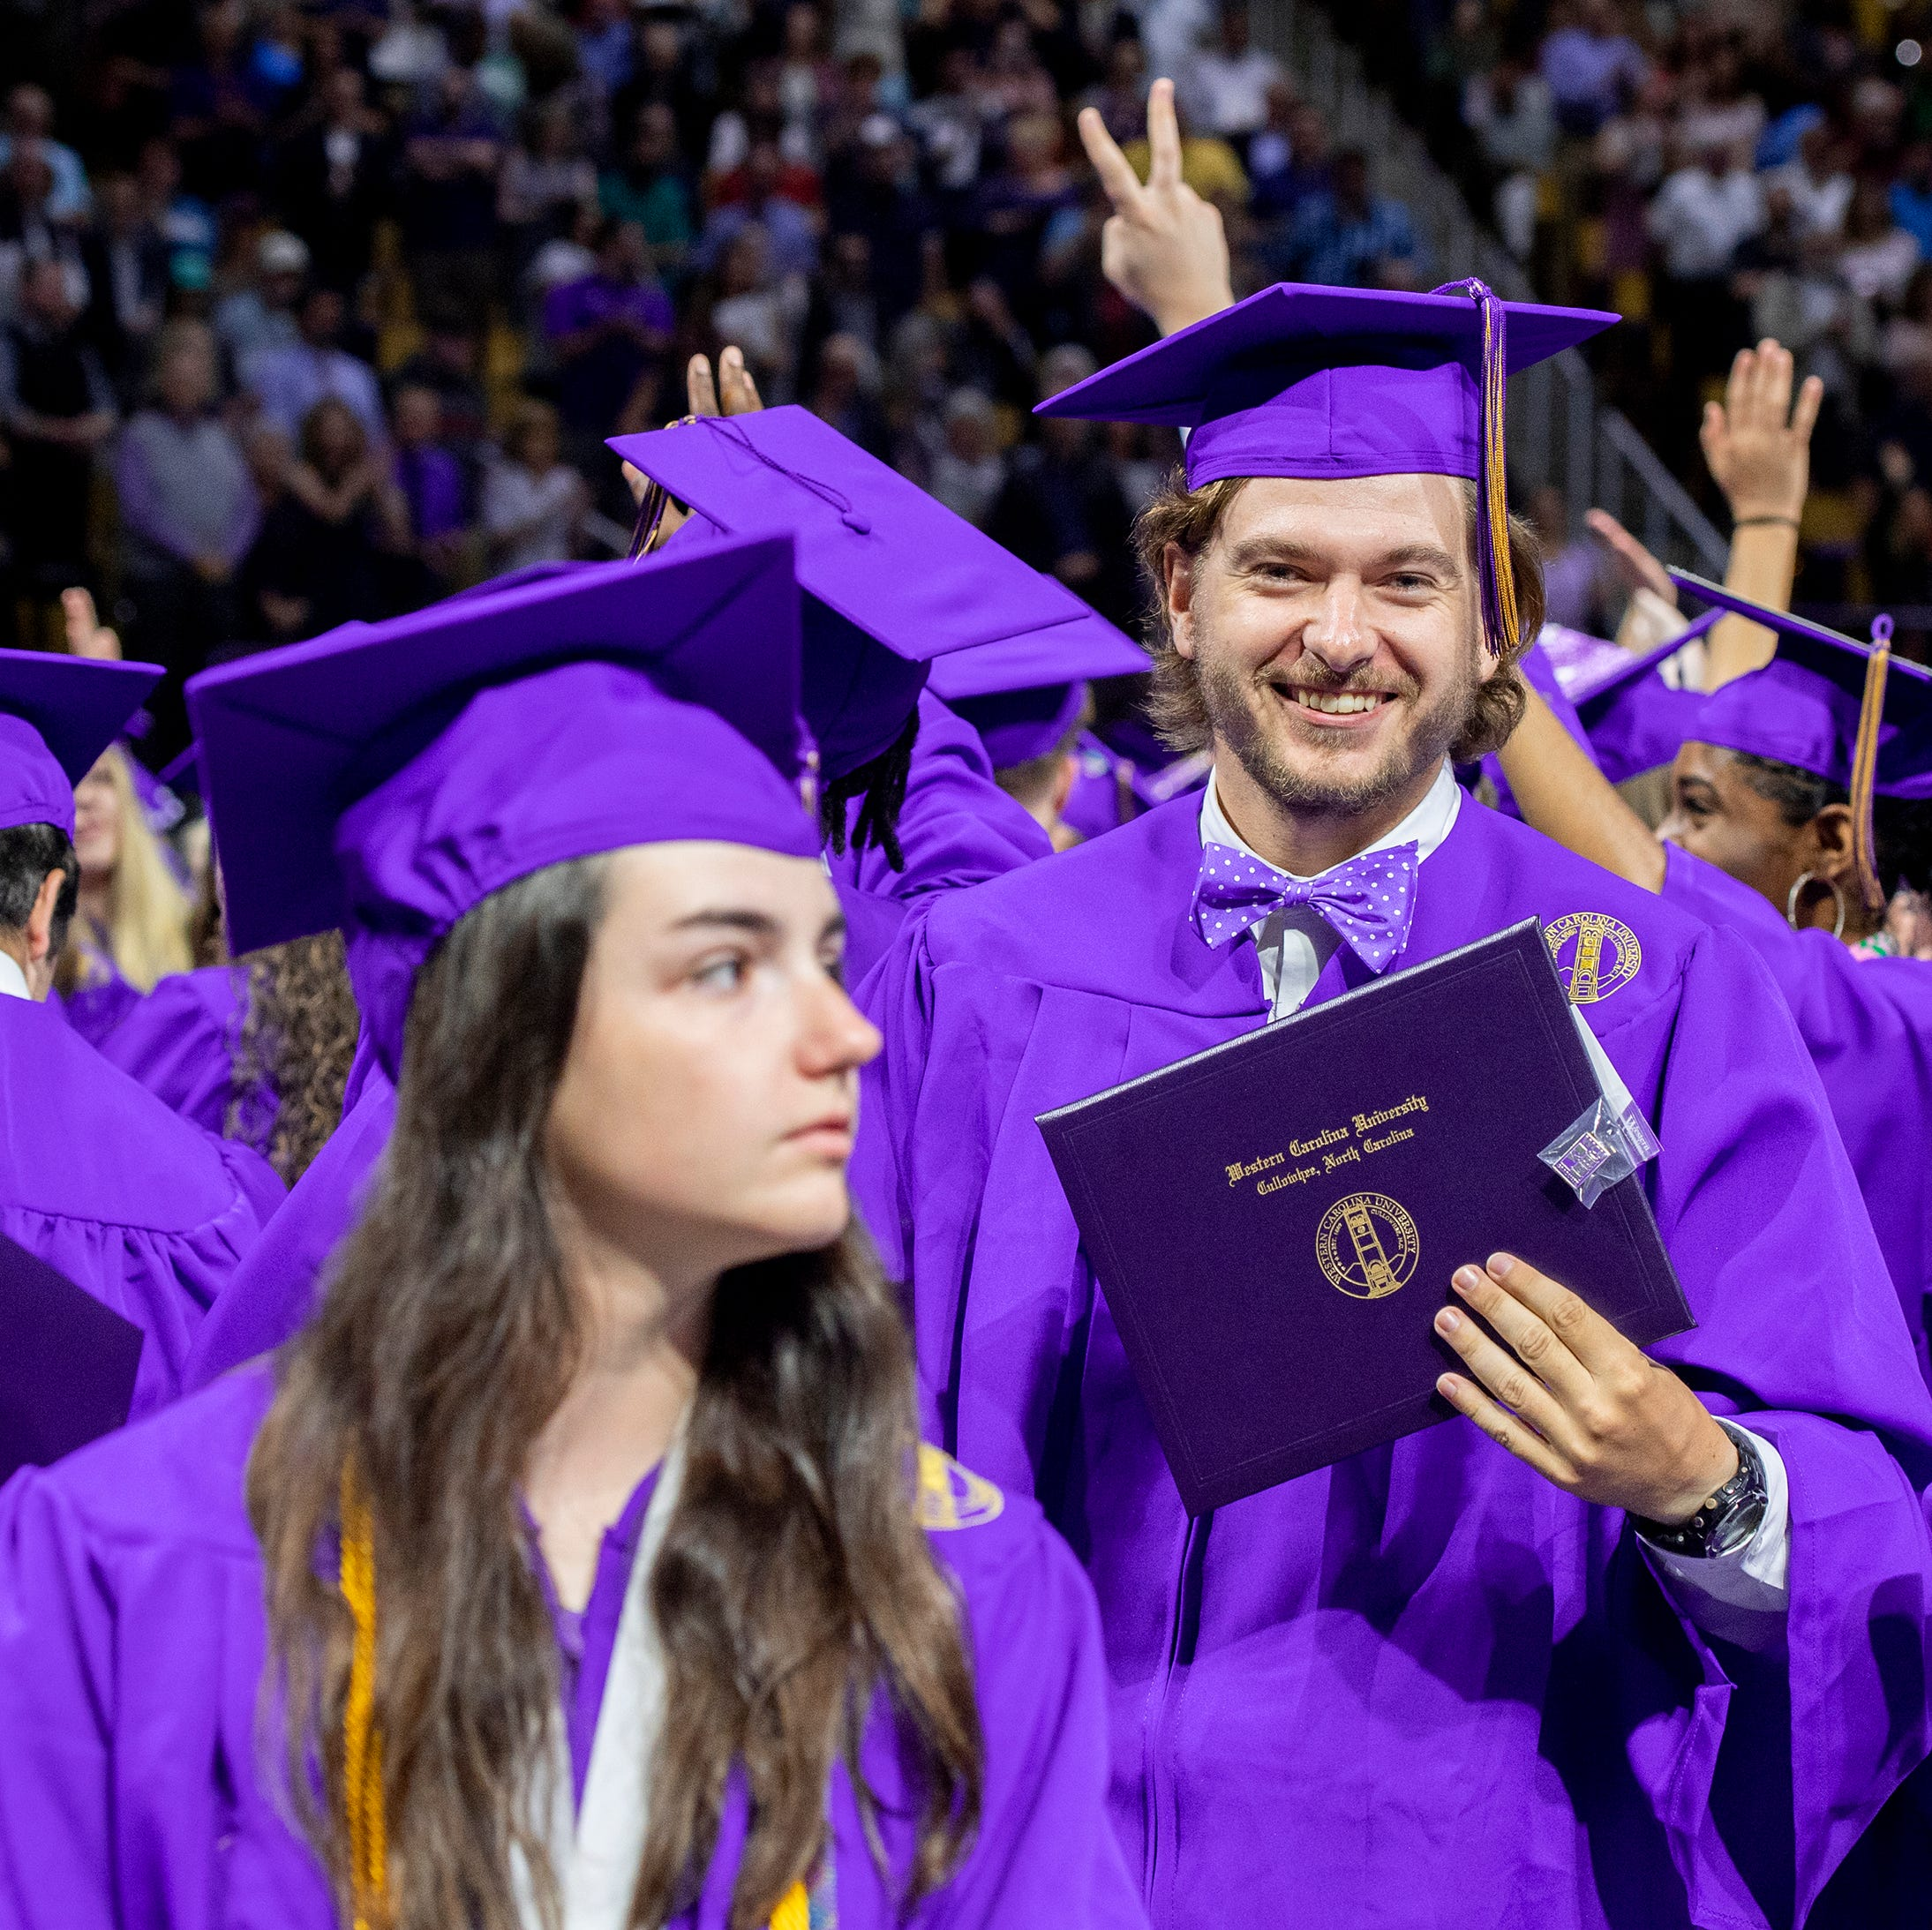 WCU holds commencement for likely largest class in school history